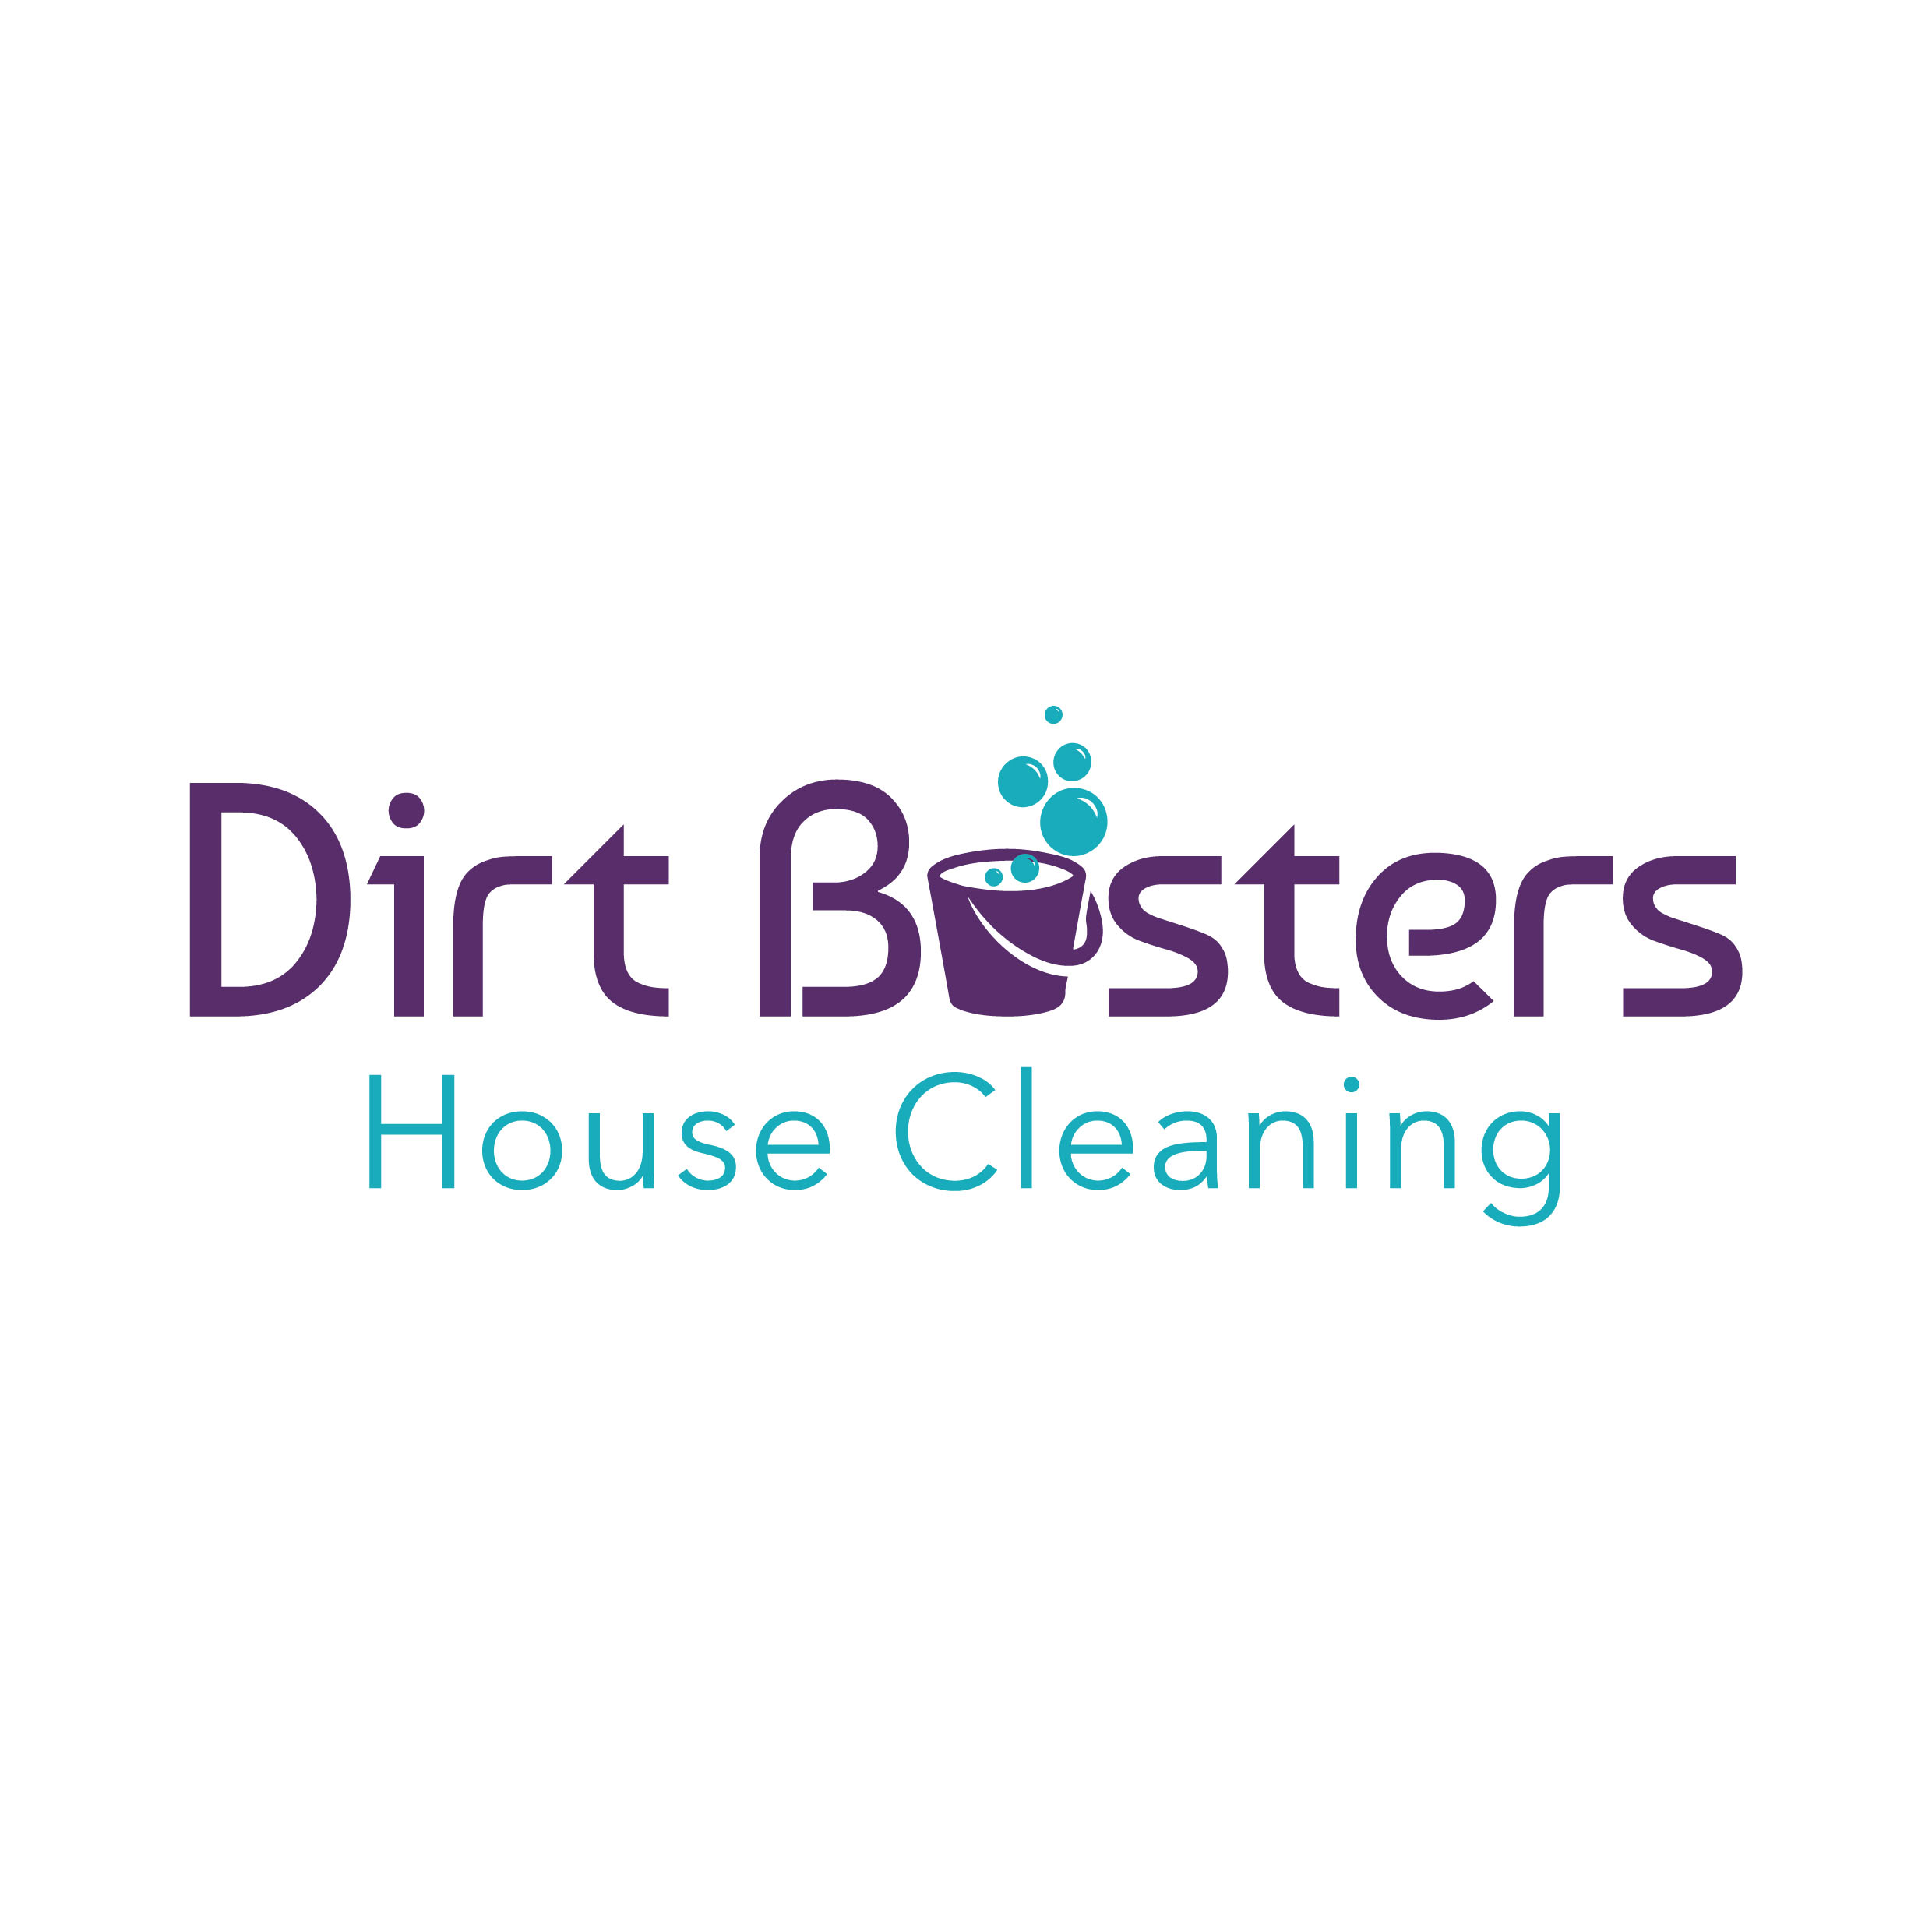 Dirt Busters House Cleaning logo